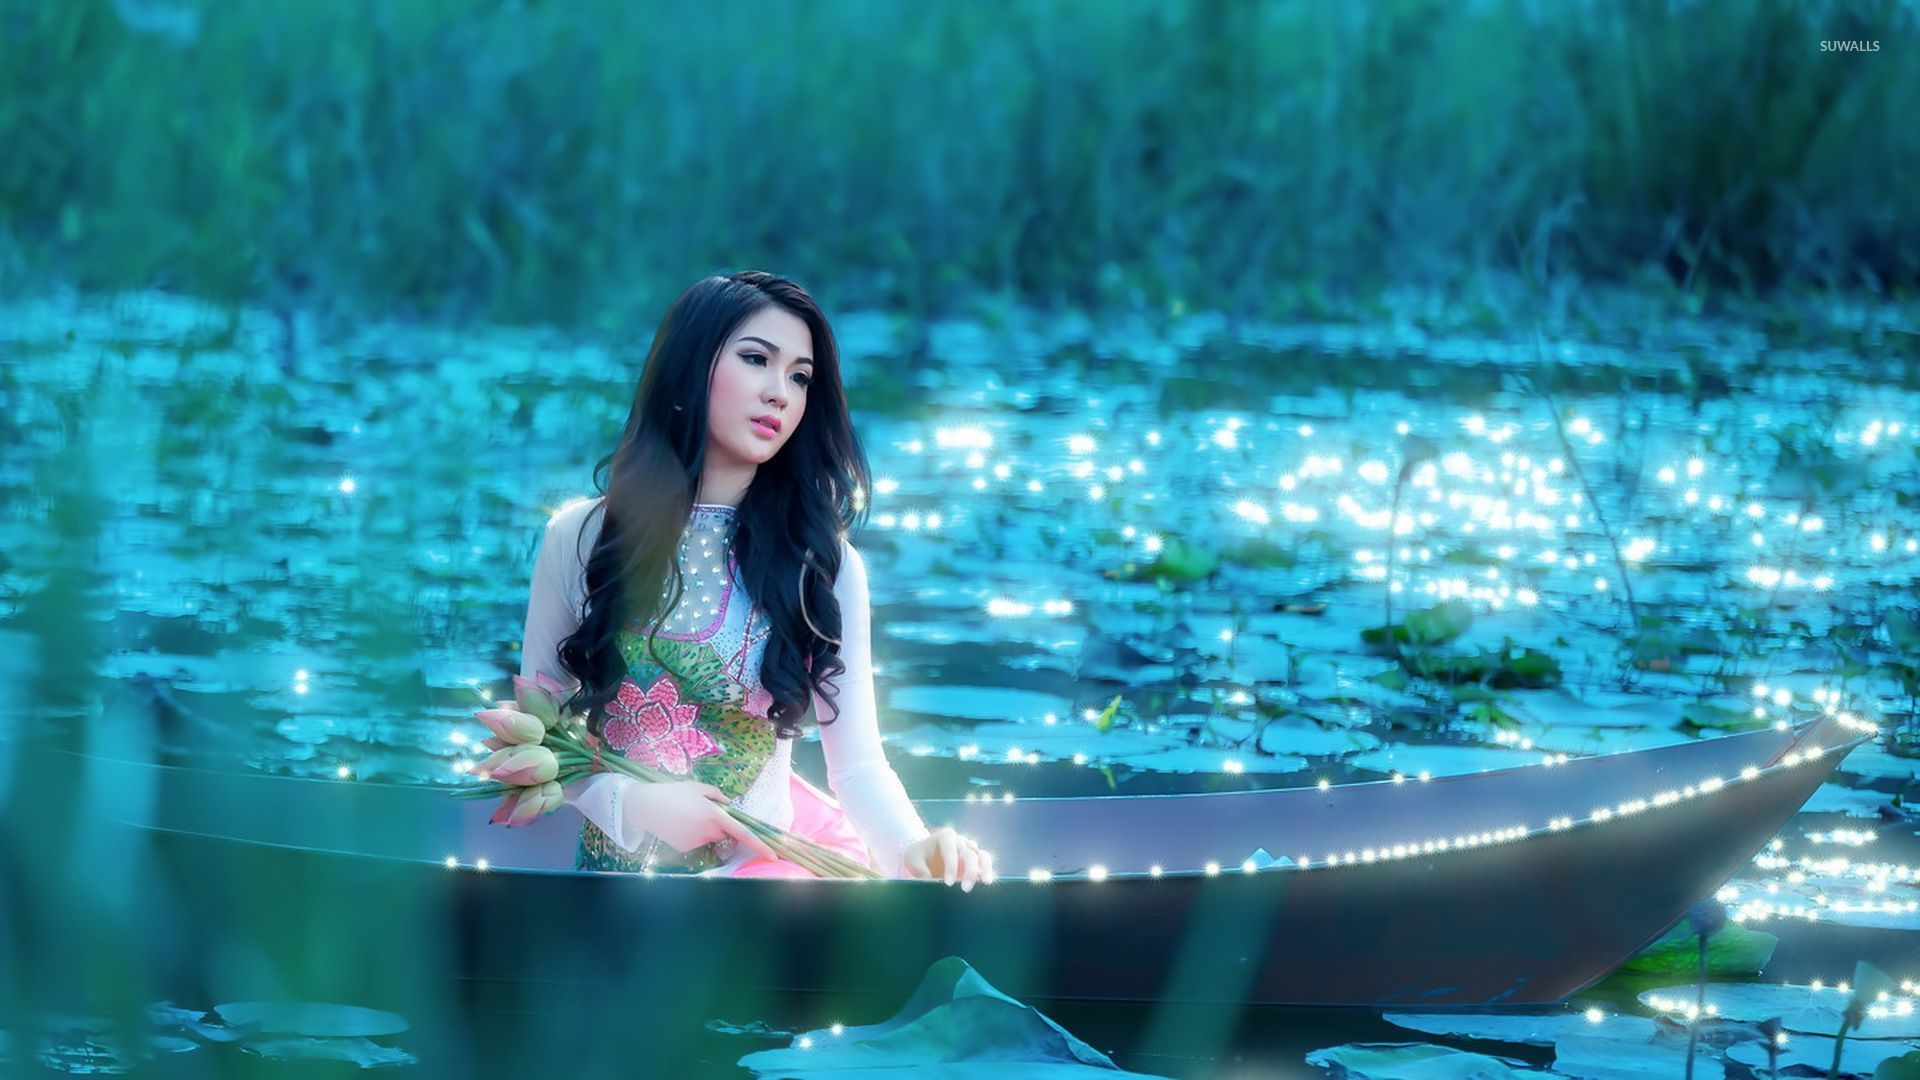 girl with flowers sitting in the boat wallpaper - girl wallpapers